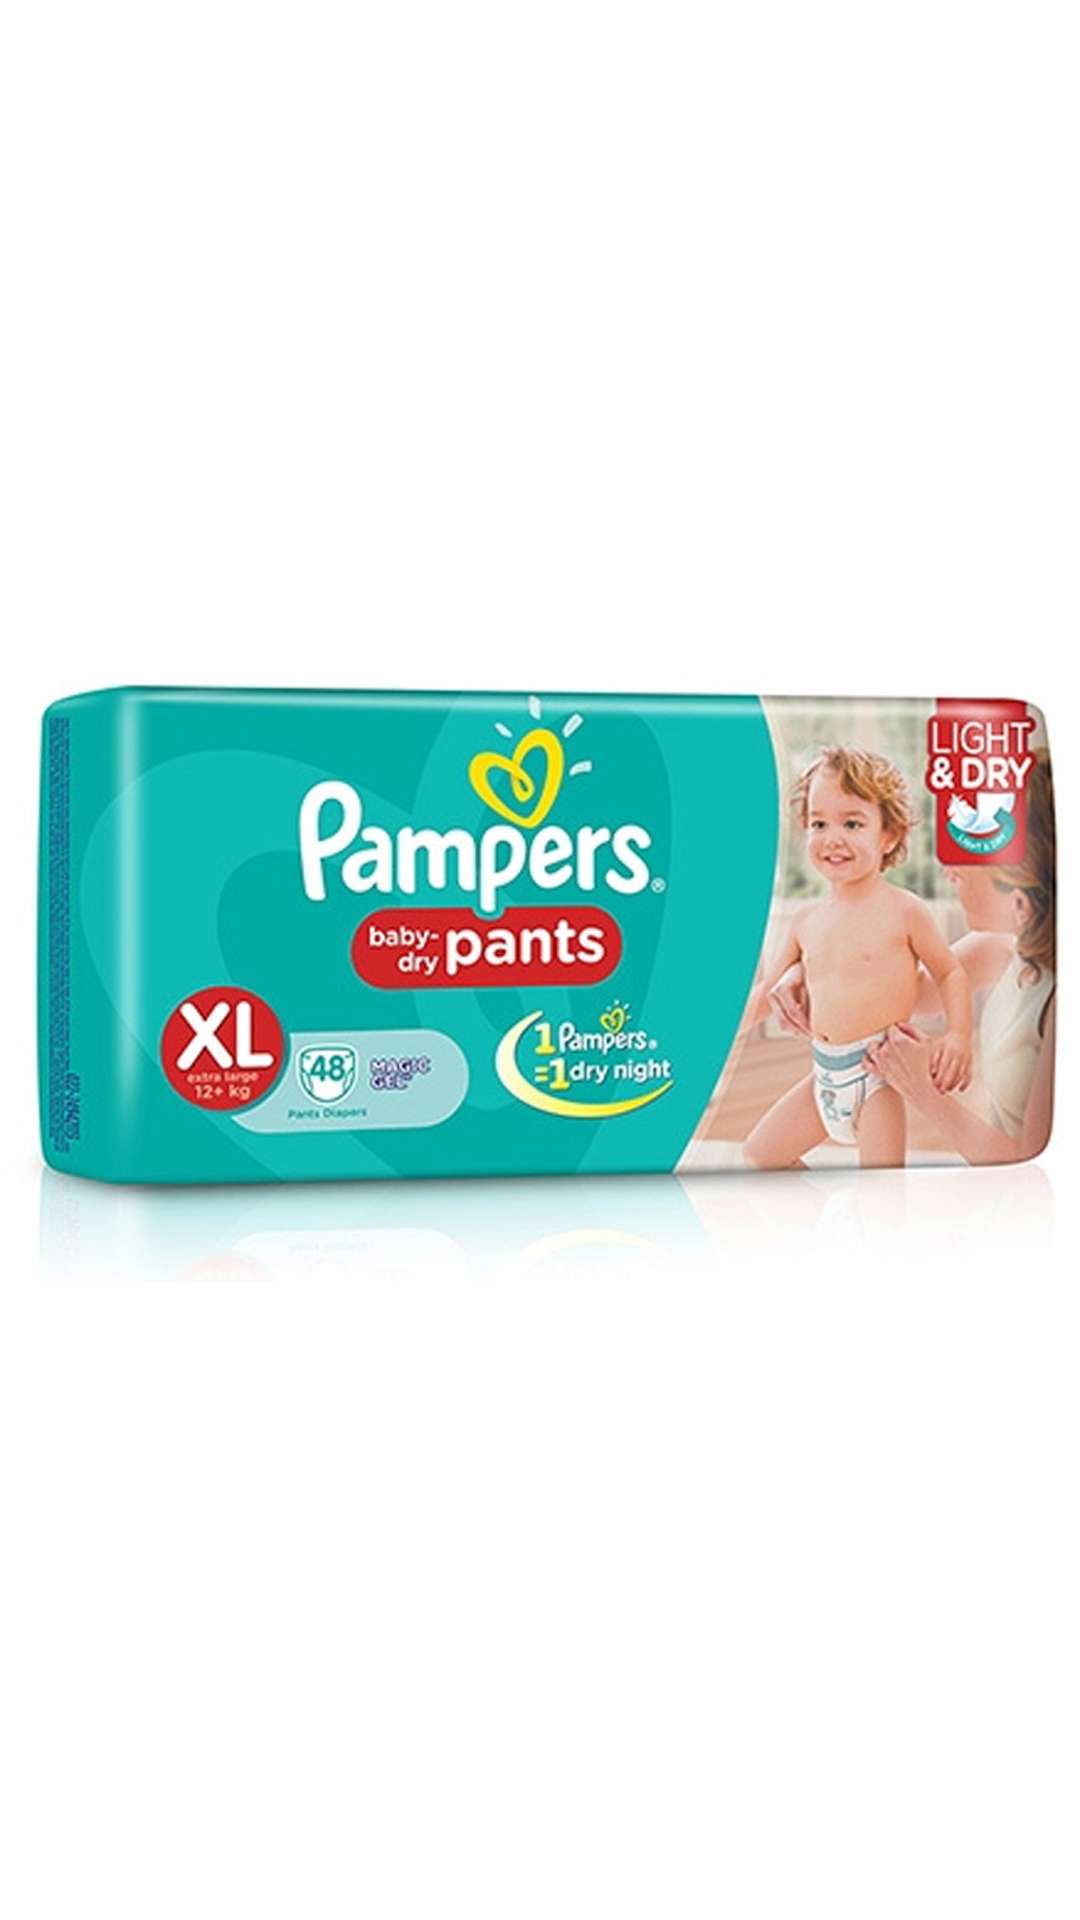 Pampers Baby Dry Pants Diaper XL - 48 Pcs